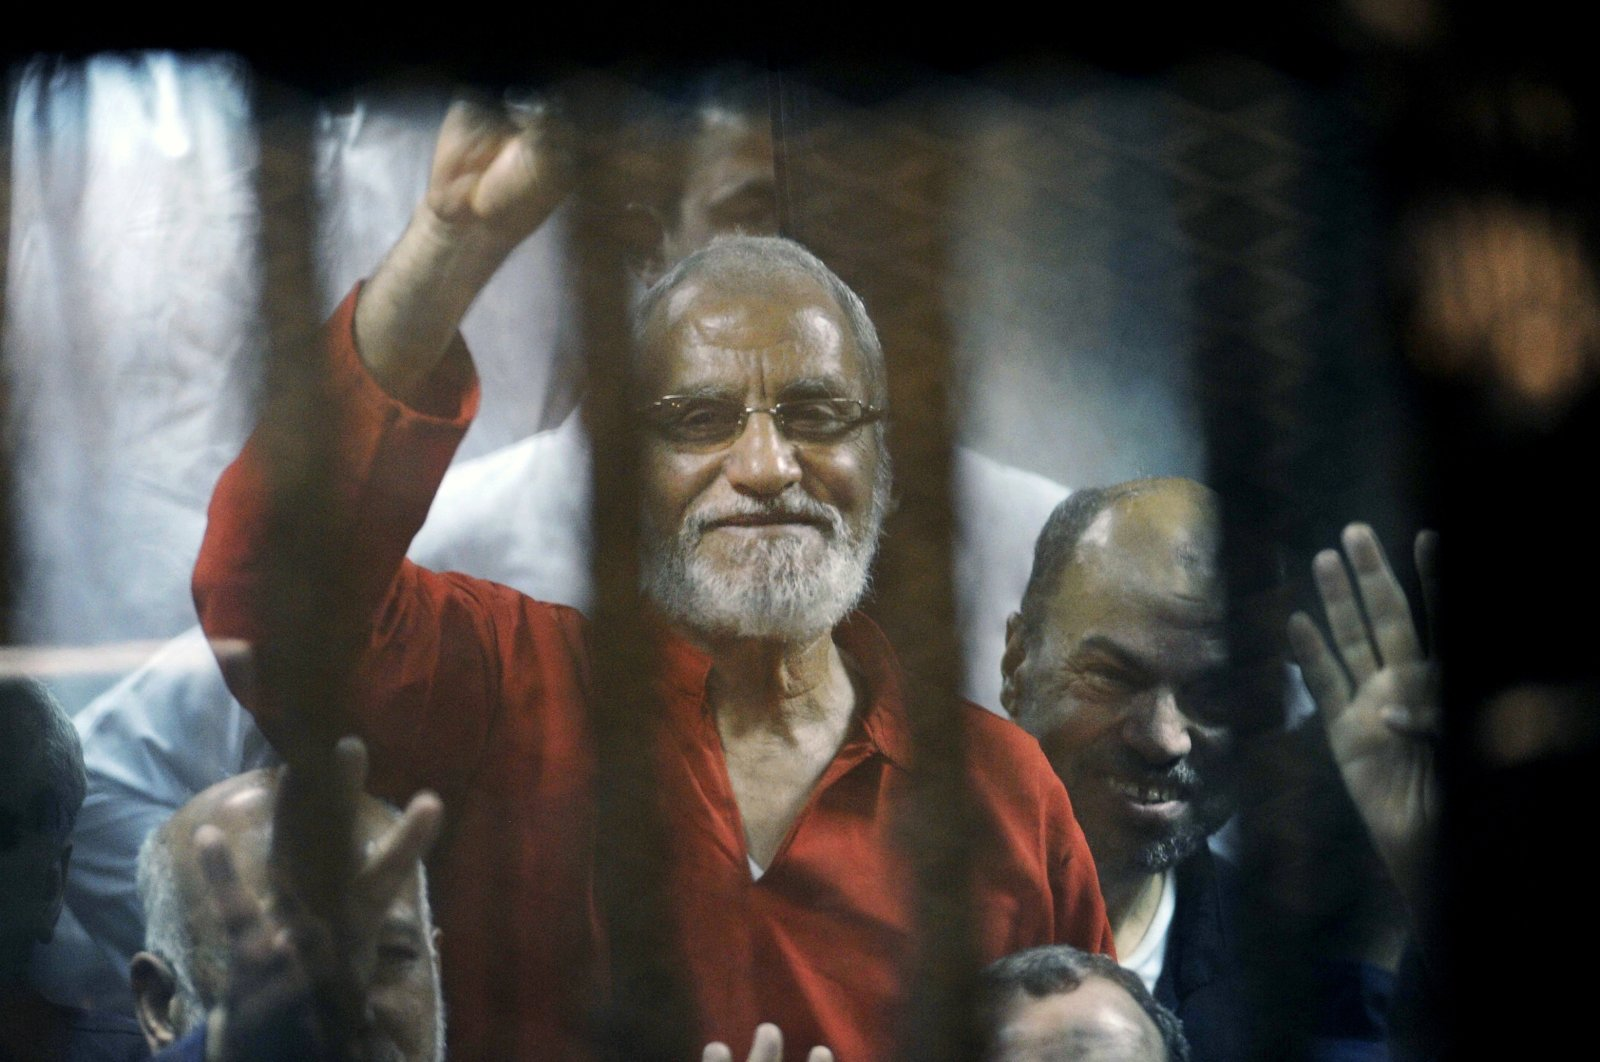 Muslim Brotherhood spiritual leader Mohammed Badie waves from the defendants cage in a makeshift courtroom at the national police academy, in eastern Cairo, Egypt, May 16, 2015. (AP Photo)